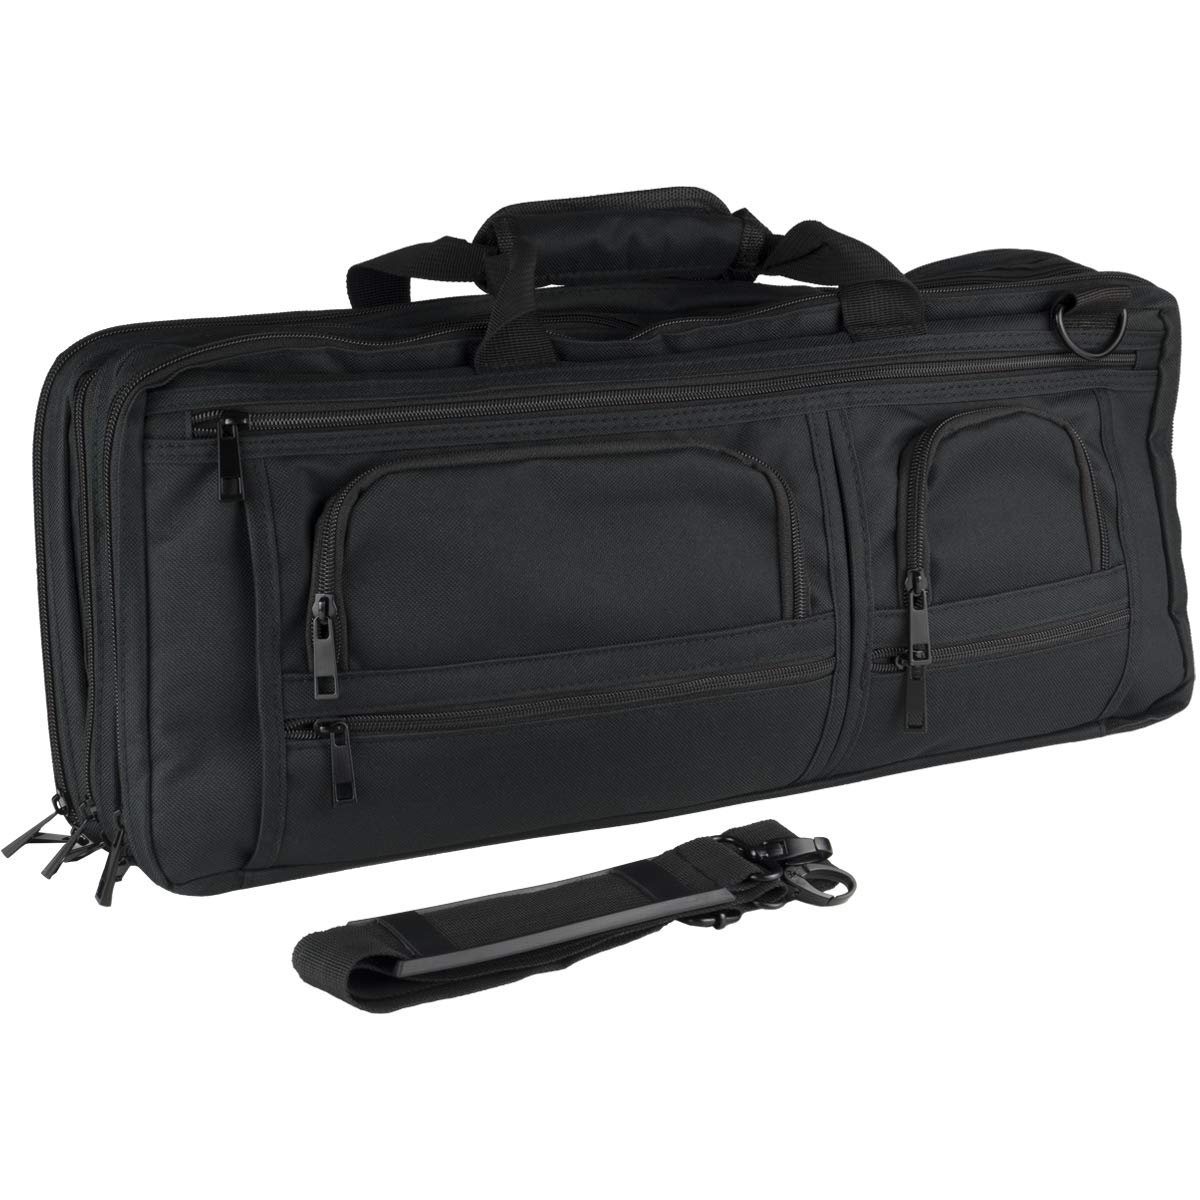 Chef Knife Case Bag | 3 Compartments & 20 Slots for Knives & Kitchen Tools | 10 Zip Pockets for Tablet, Notebooks & Utensils | Executive Chefs & Culinary Students Gift (Black)